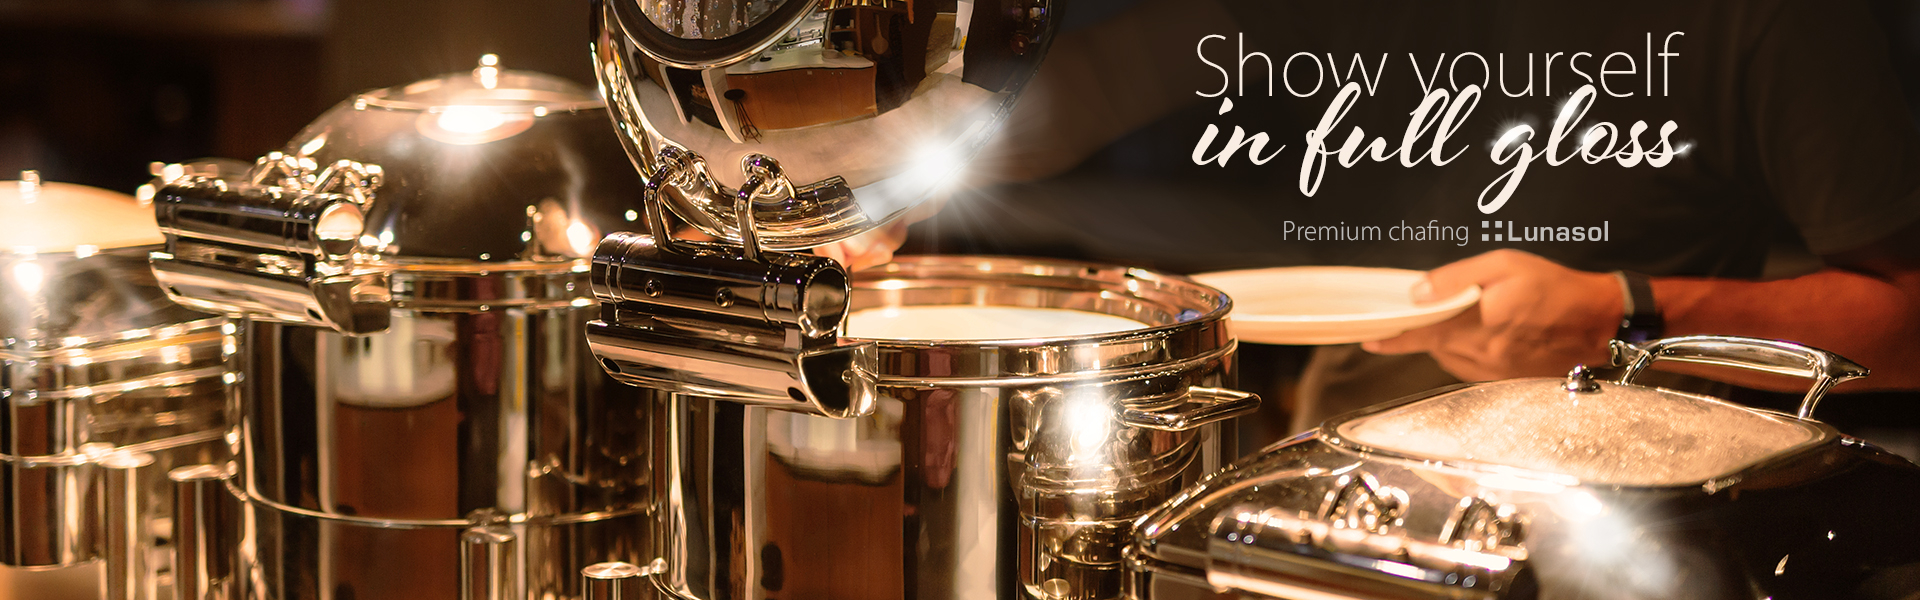 Premium chafing for the perfect catering